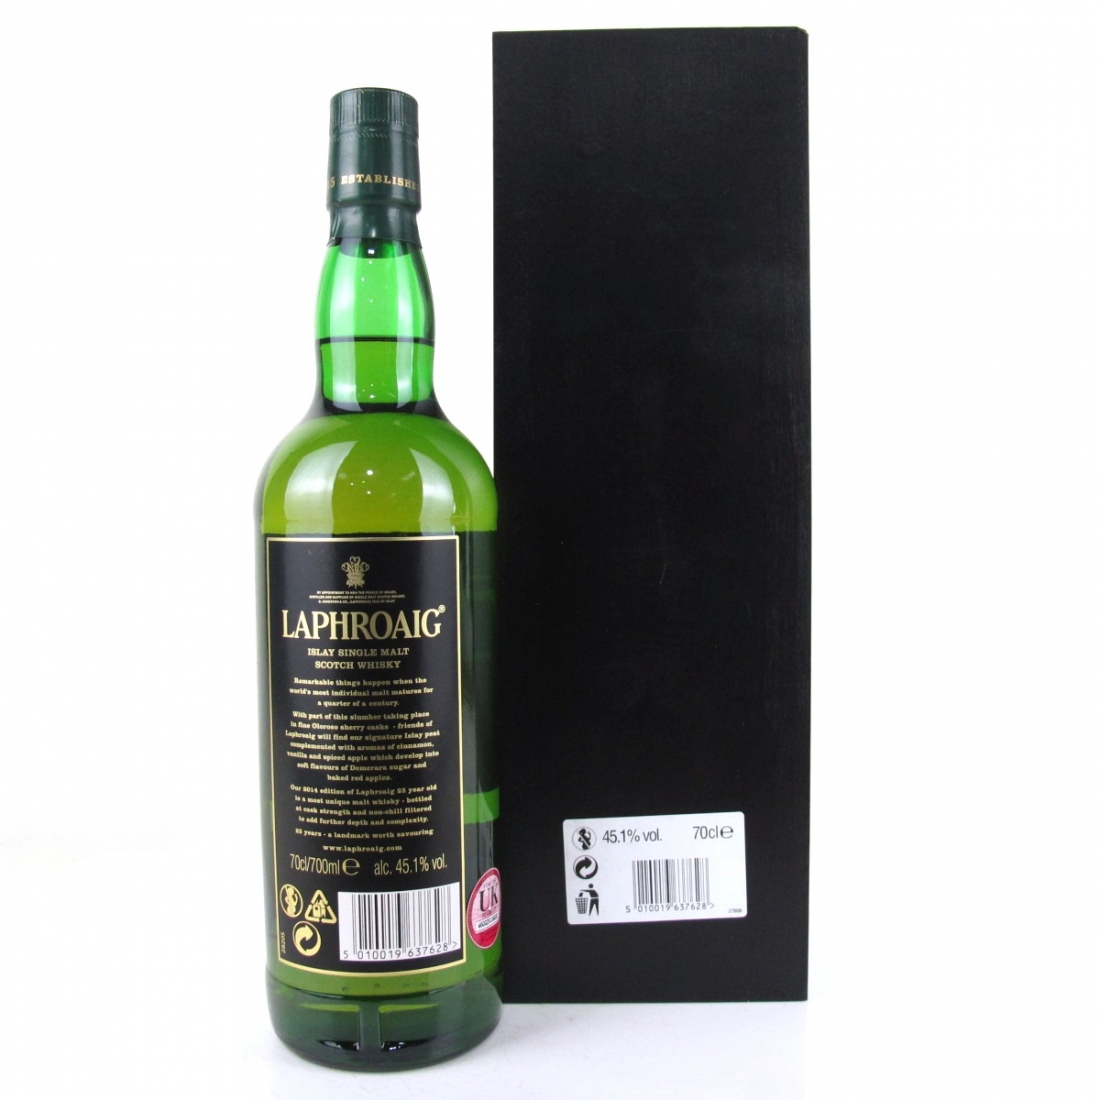 Laphroaig 25 Year Old 2014 Cask Strength Edition